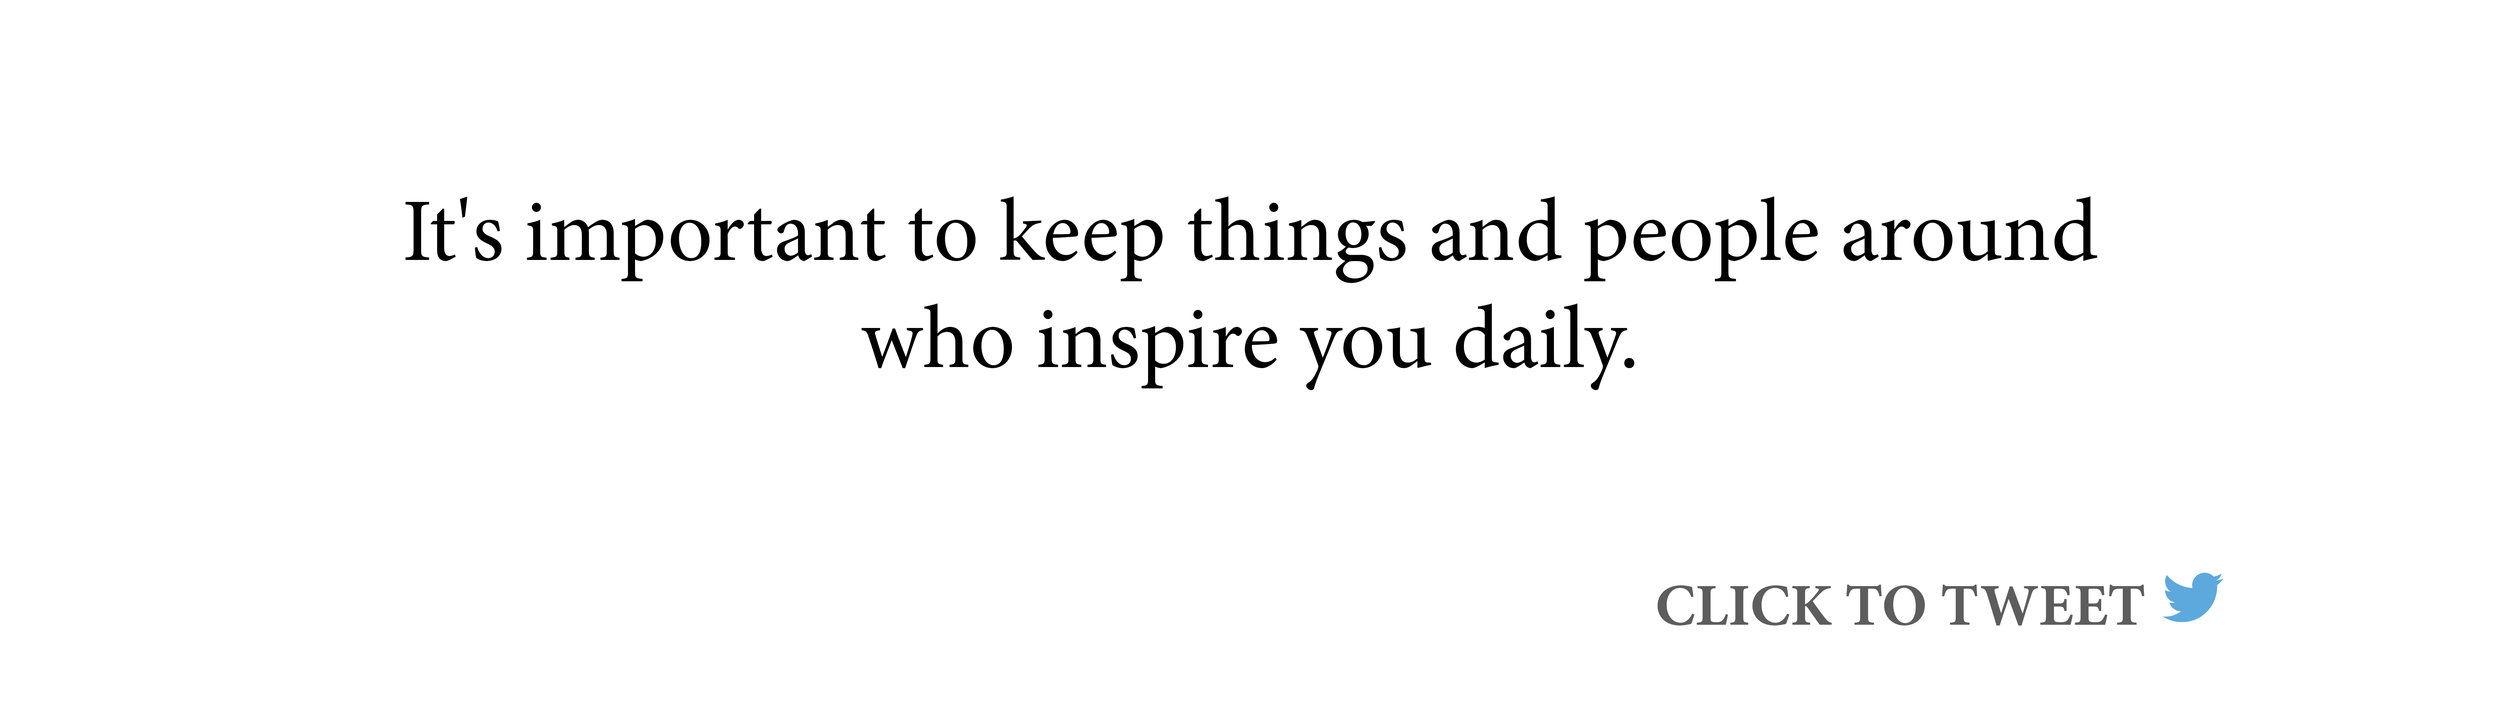 5-steps-to-find-inspiration-daily-click-to-tweet.jpg